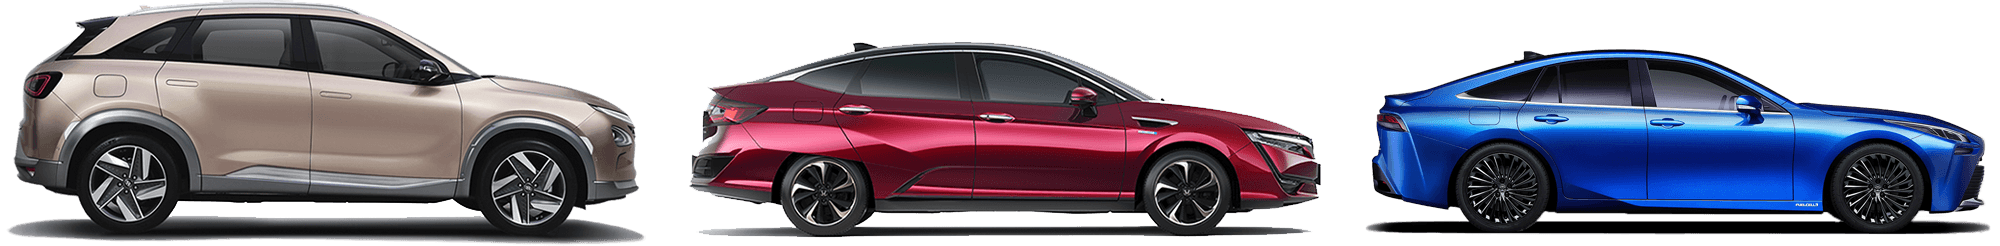 Toyota Mirai 2021, Honda Clarity Fuel Cell, Hyundai NEXO fuel cell electric vehicles powered by hydrogen